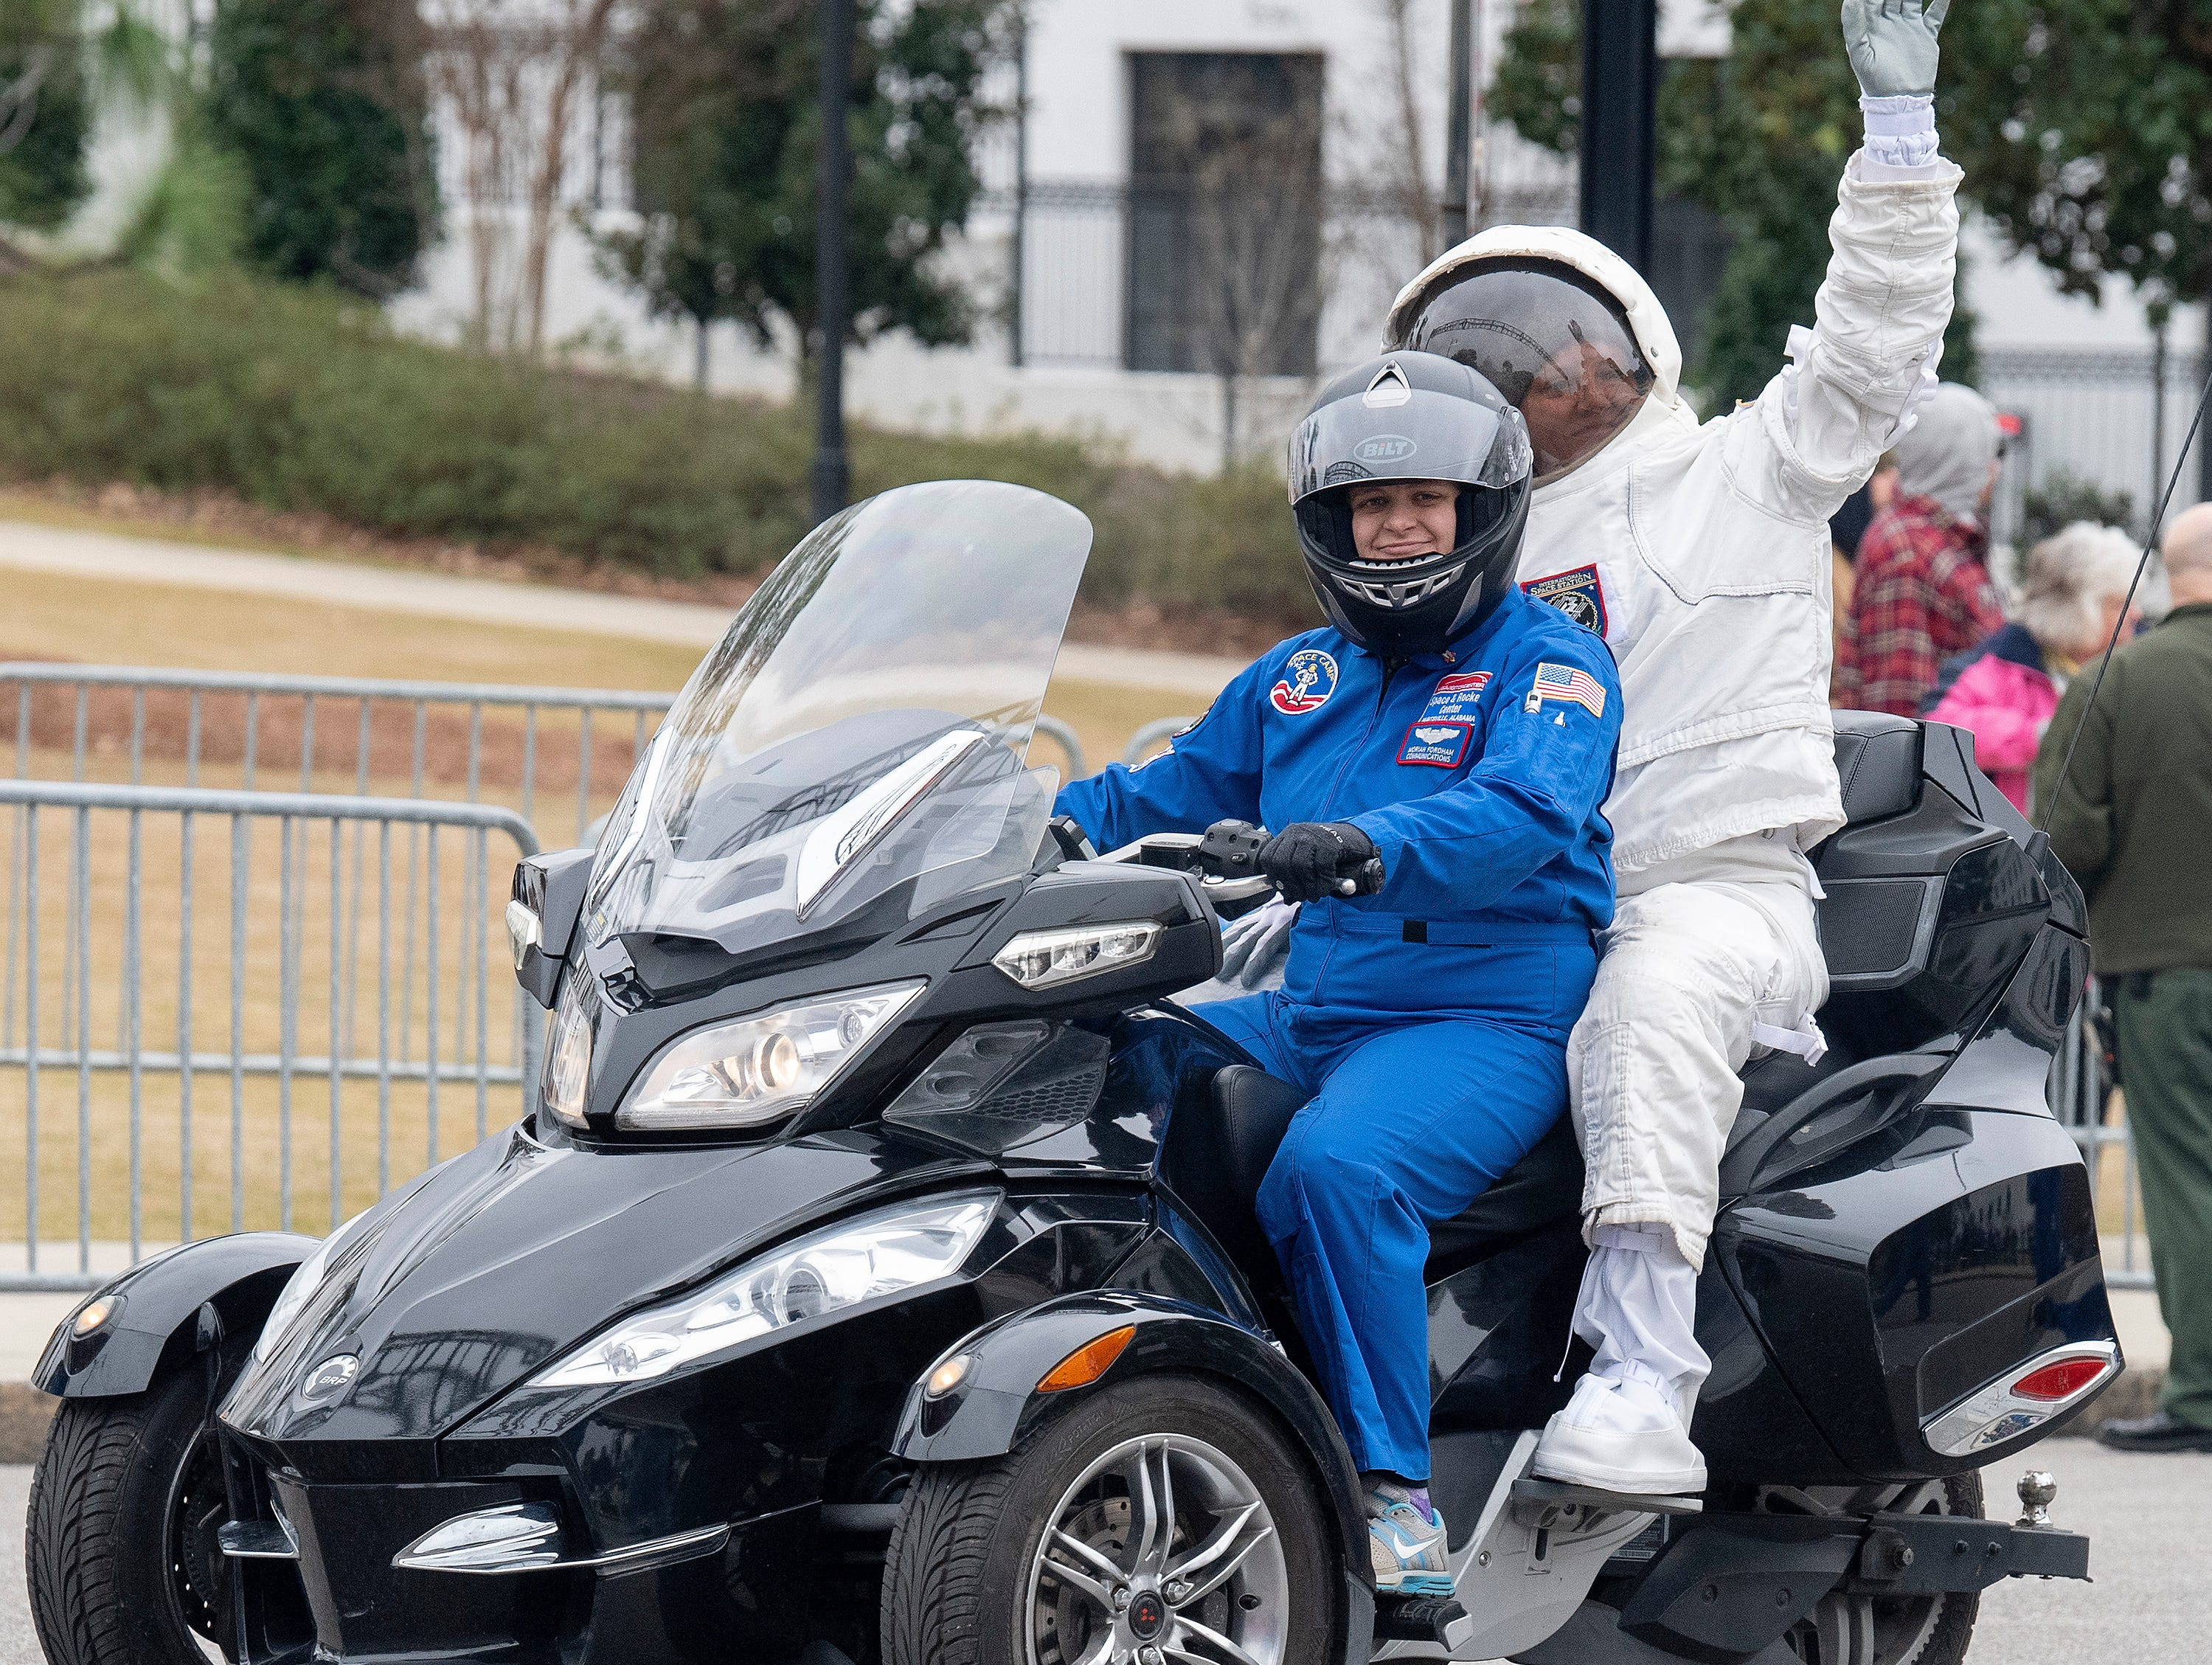 Space Camp is represented in the Inauguration Parade for Governor Kay Ivey in Montgomery, Ala., on Monday January 14, 2019.